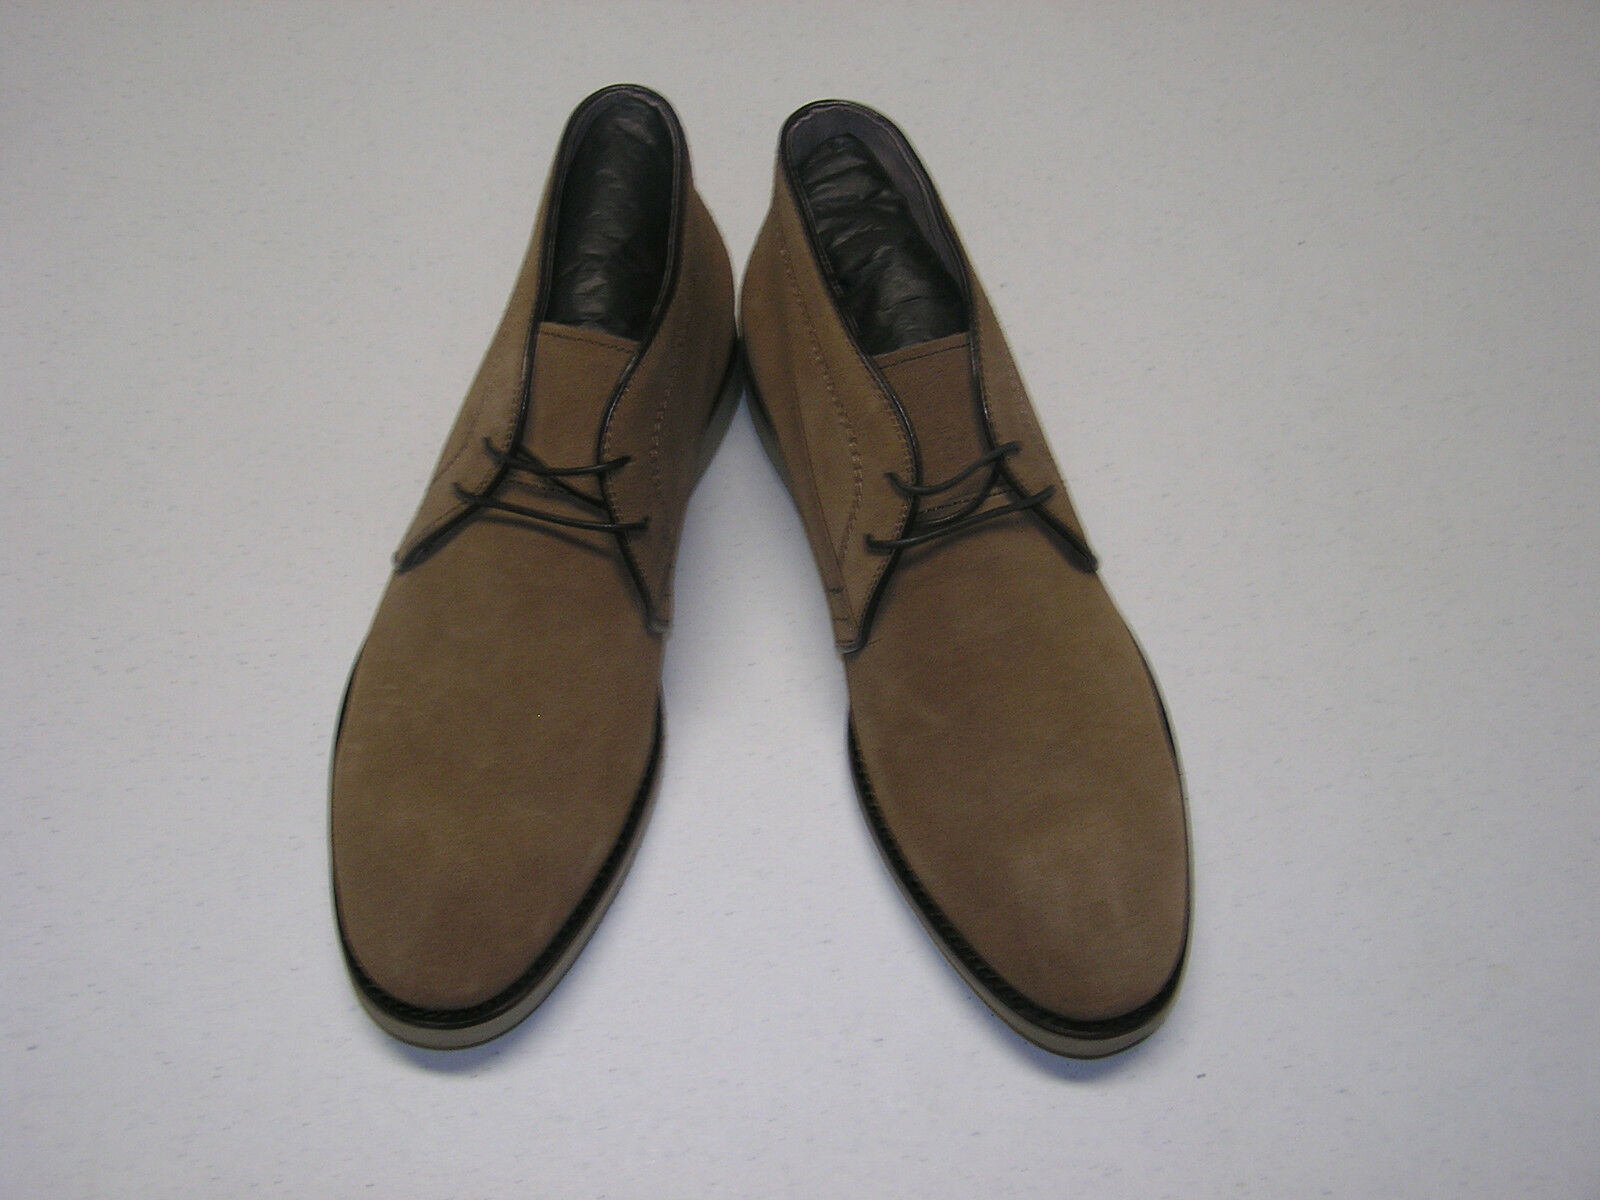 165 New in Box Joseph Abboud Harford Chukka boot in tan size 10.5 M